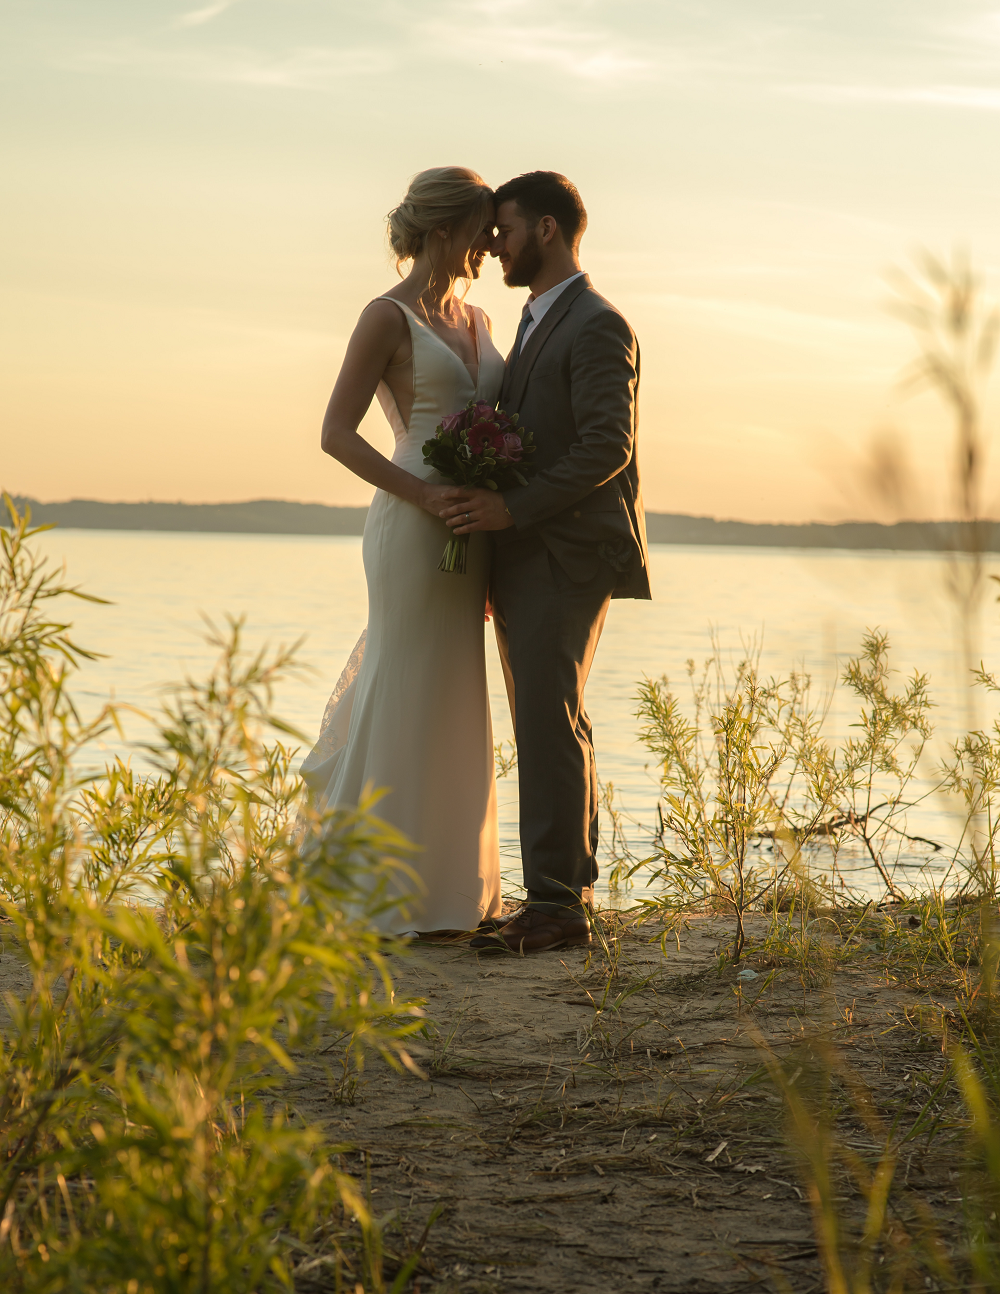 DESTINATION WEDDING IN TRAVERSE CITY WITH KRISTEN AND SCOTT Sunset Bridal Portraits